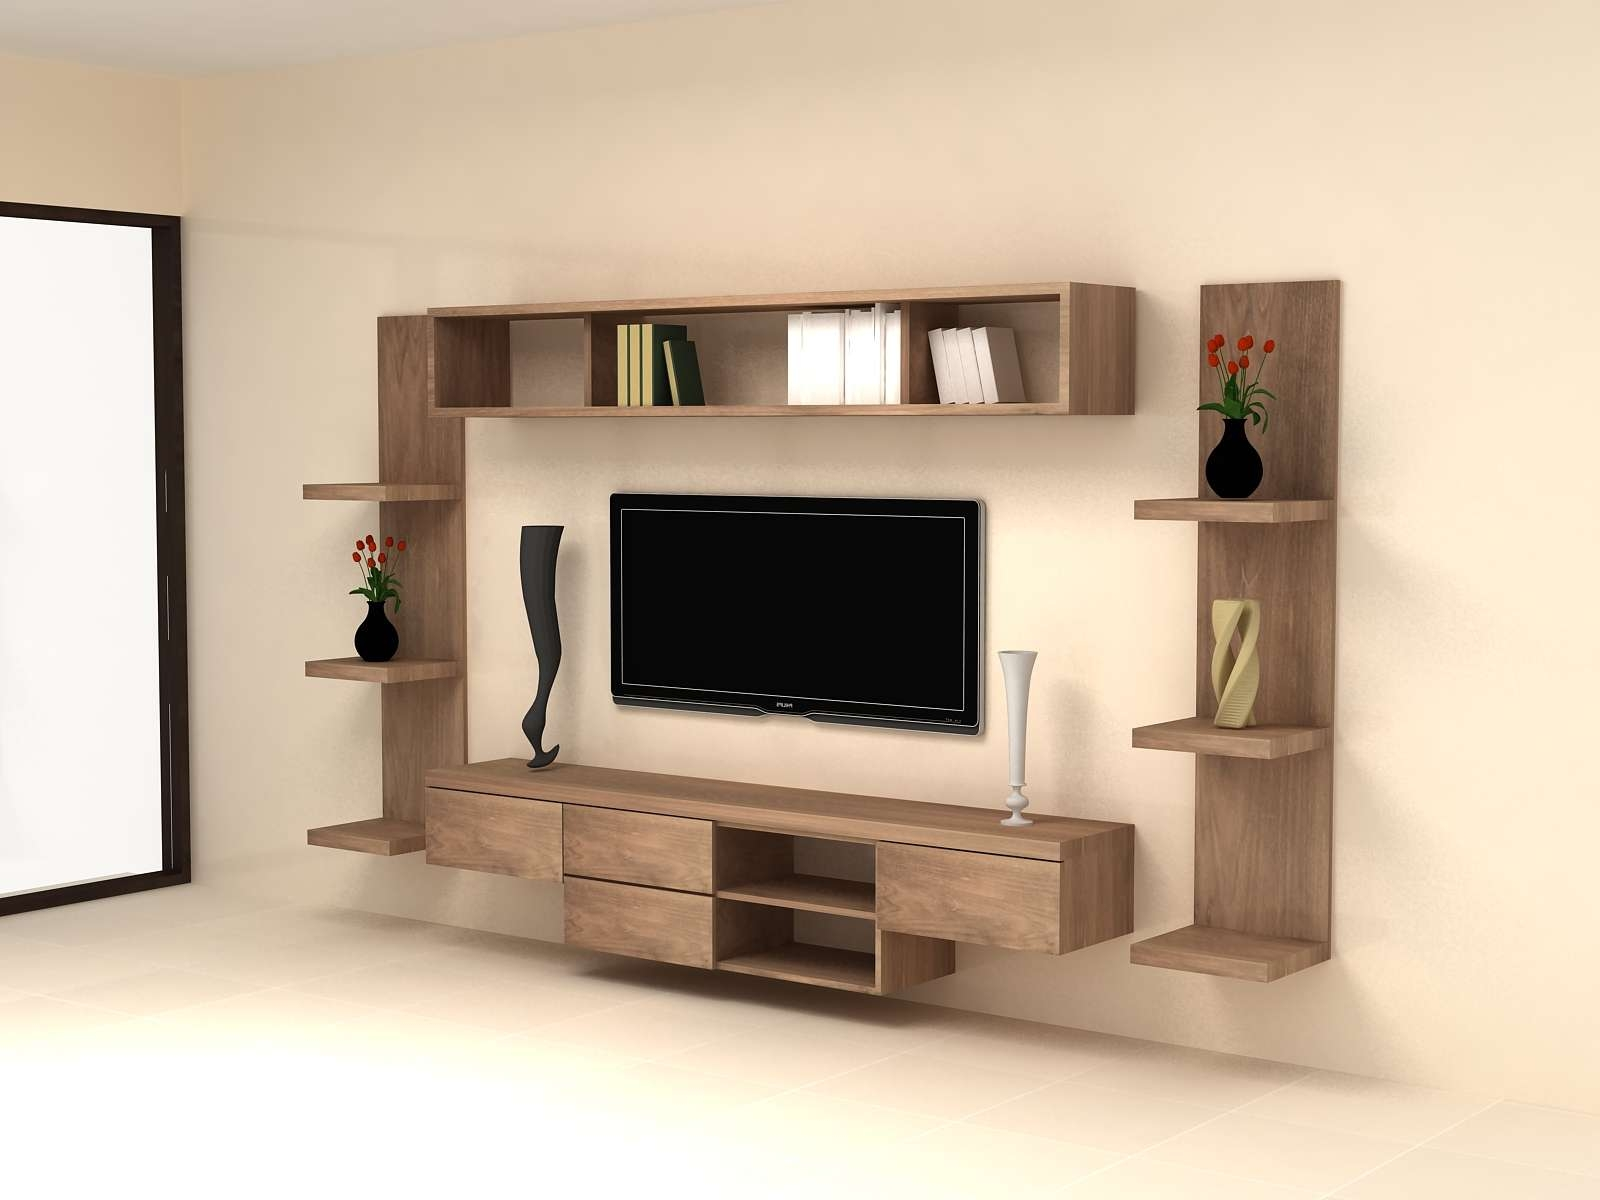 Bedroom : Tv Wall Unit Designs Tv Stand Unit Thin Tv Stand Wall For Tv Cabinets Contemporary Design (View 9 of 20)